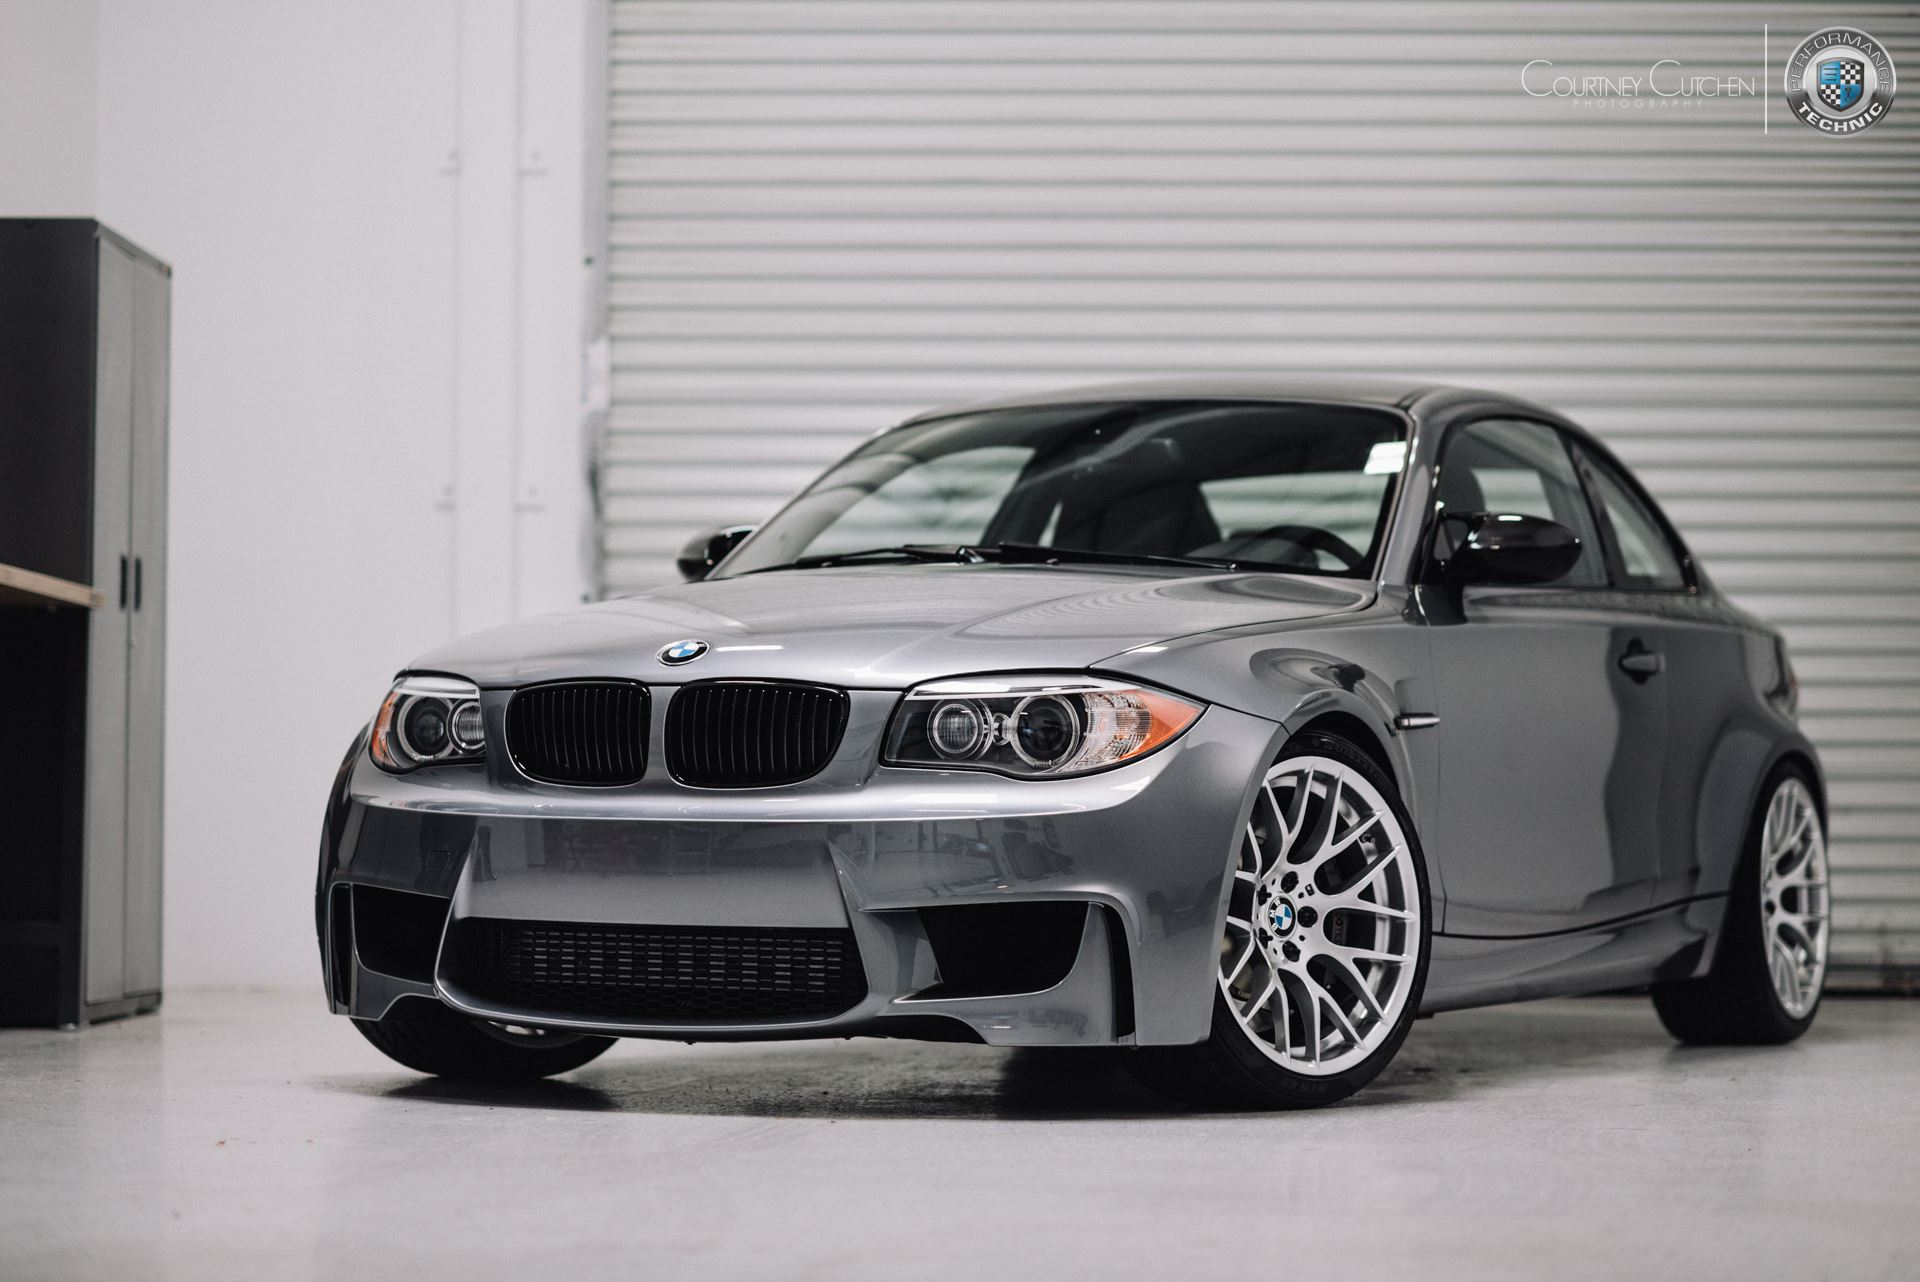 Gorgeous Bmw 1 Series M Conversion With Dinan S65 Stroker